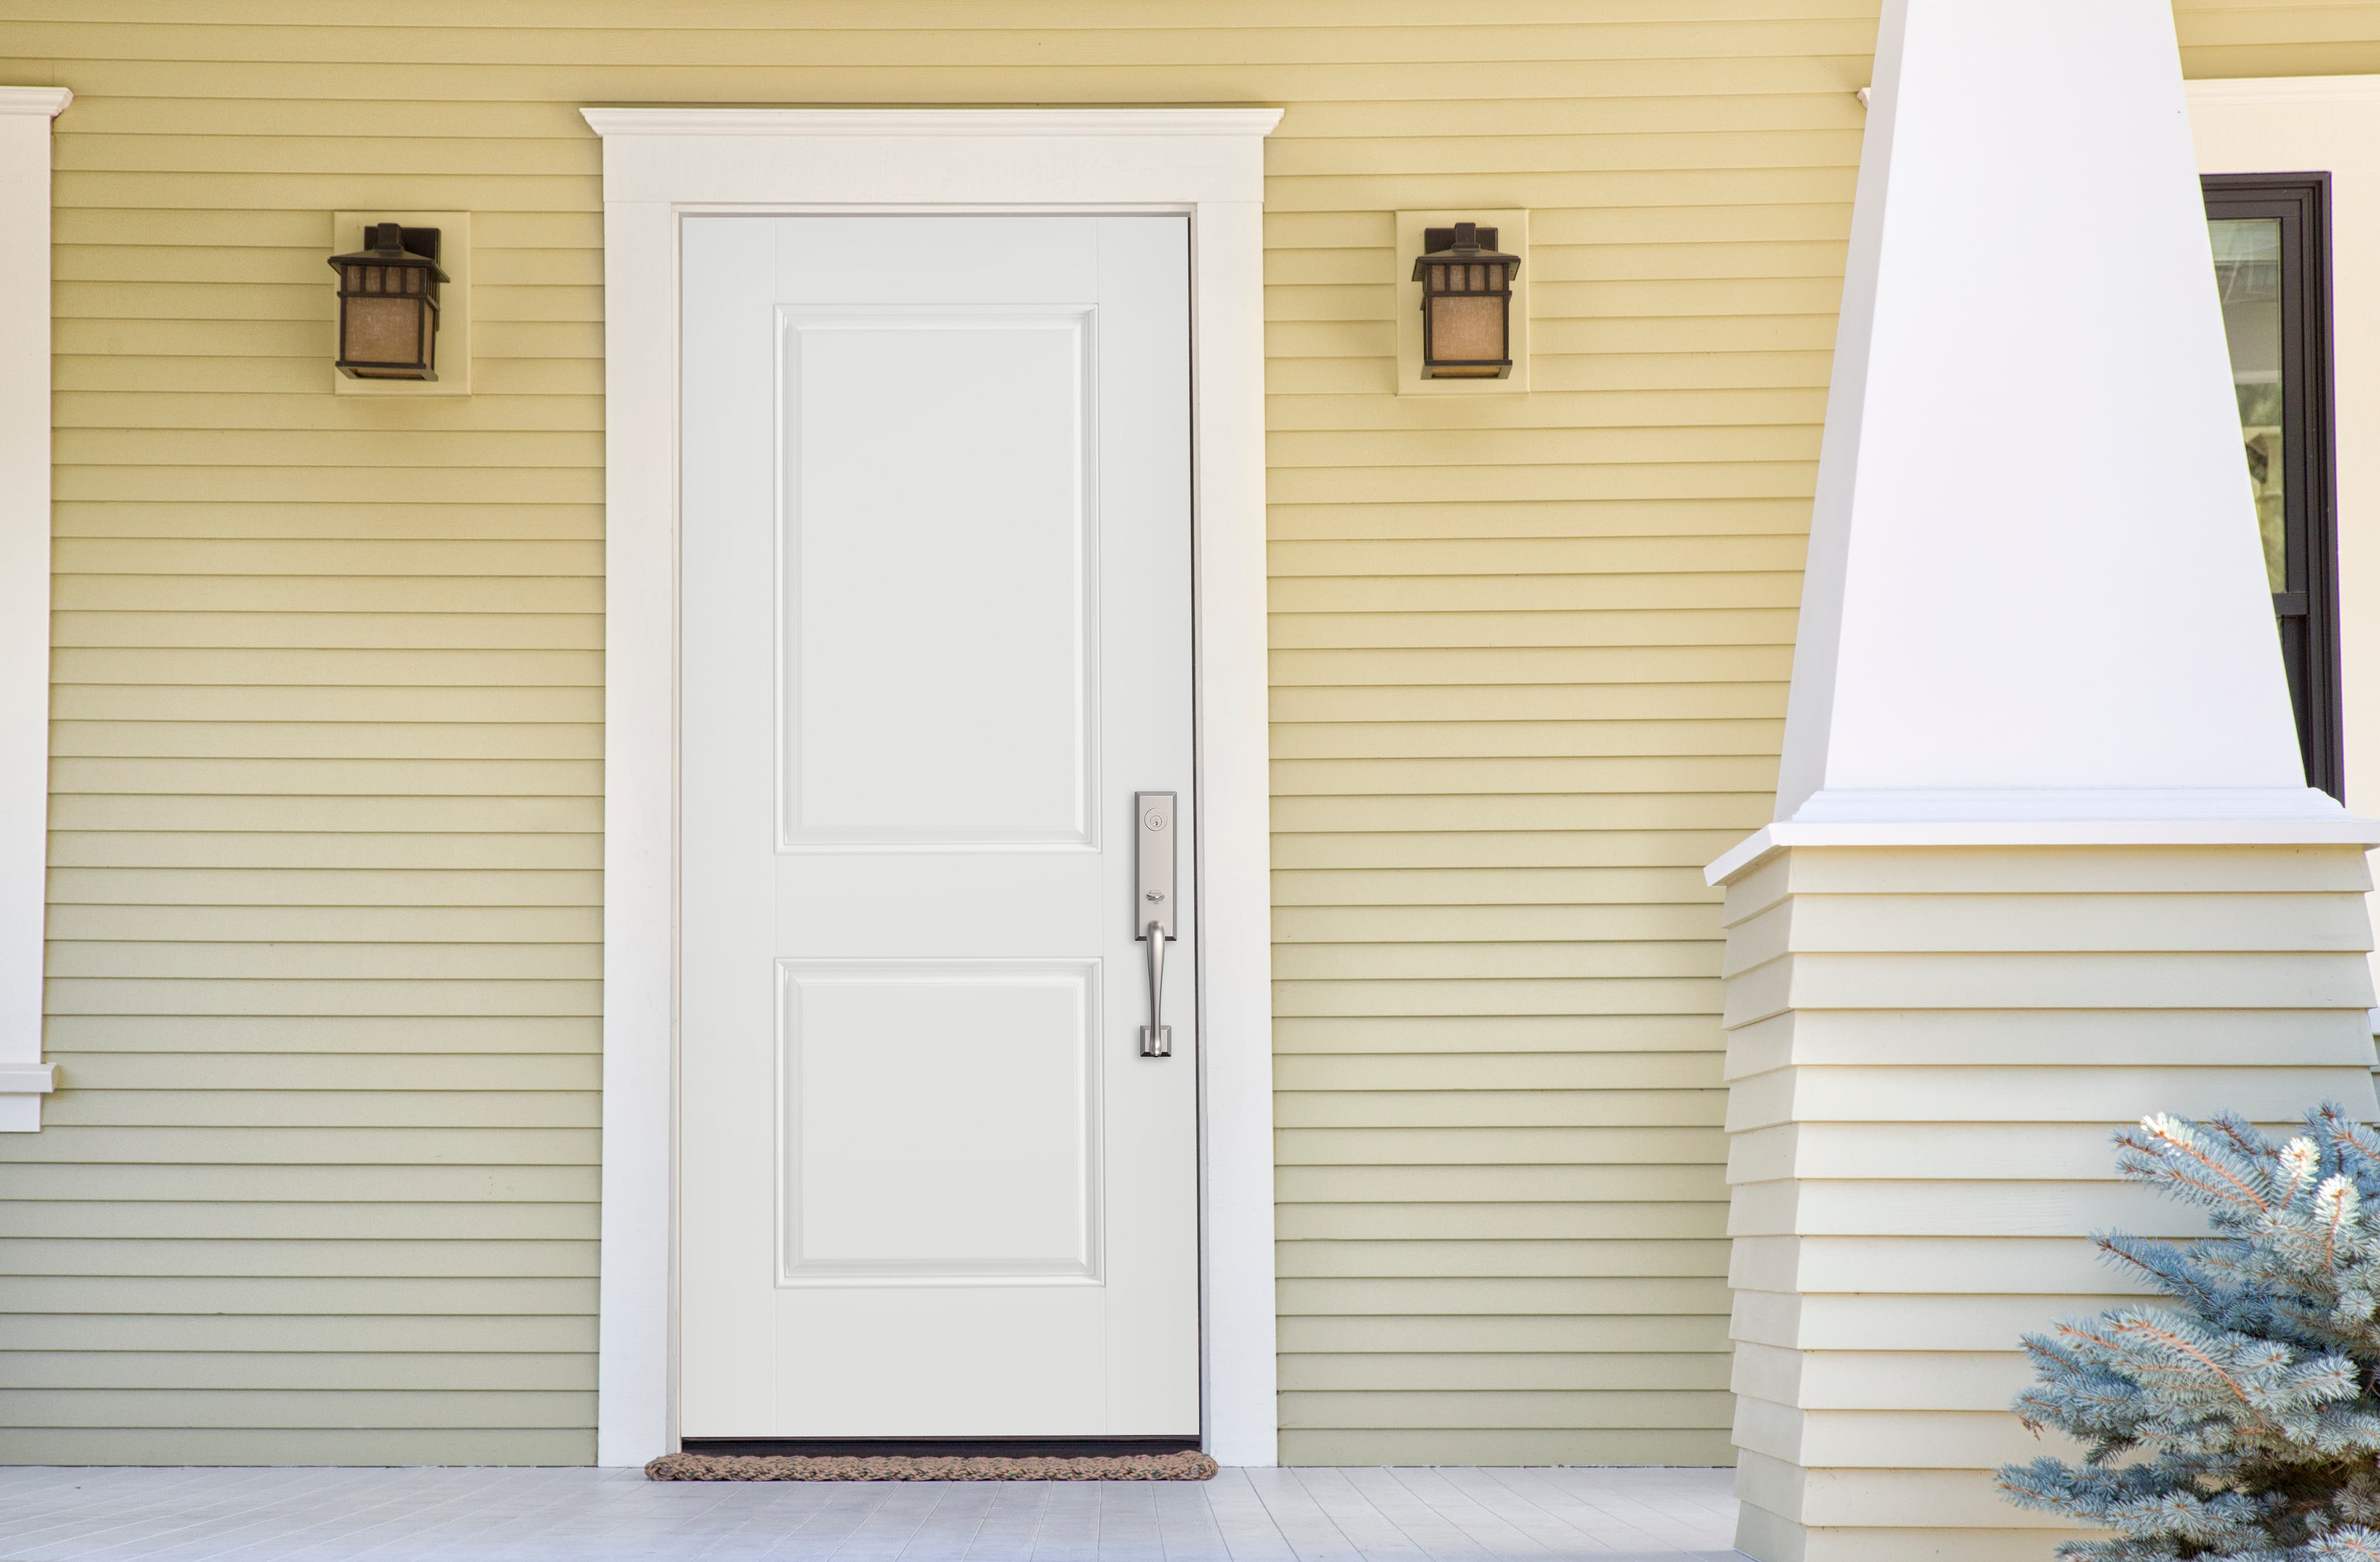 Stylish steel door surrounded by traditional trim and clapboard siding